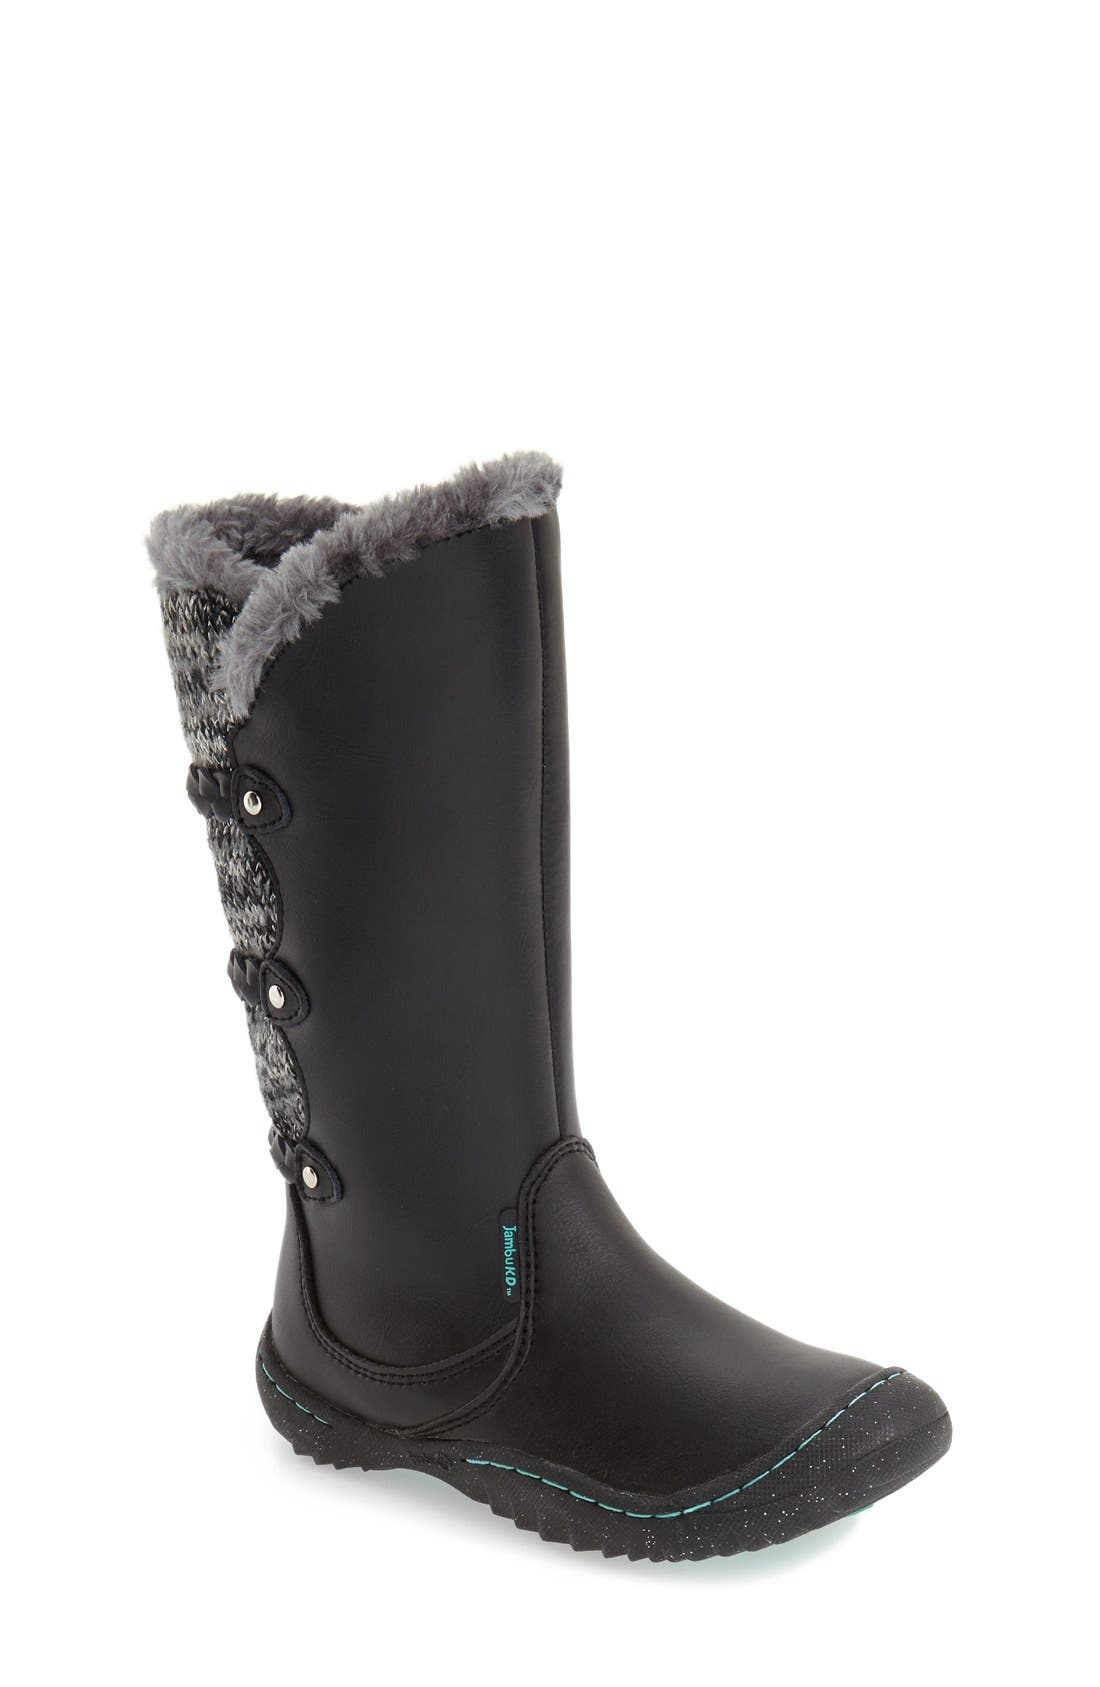 Main Image - Jambu 'Azami' Water Resistant Boot (Toddler, Little Kid & Big Kid)